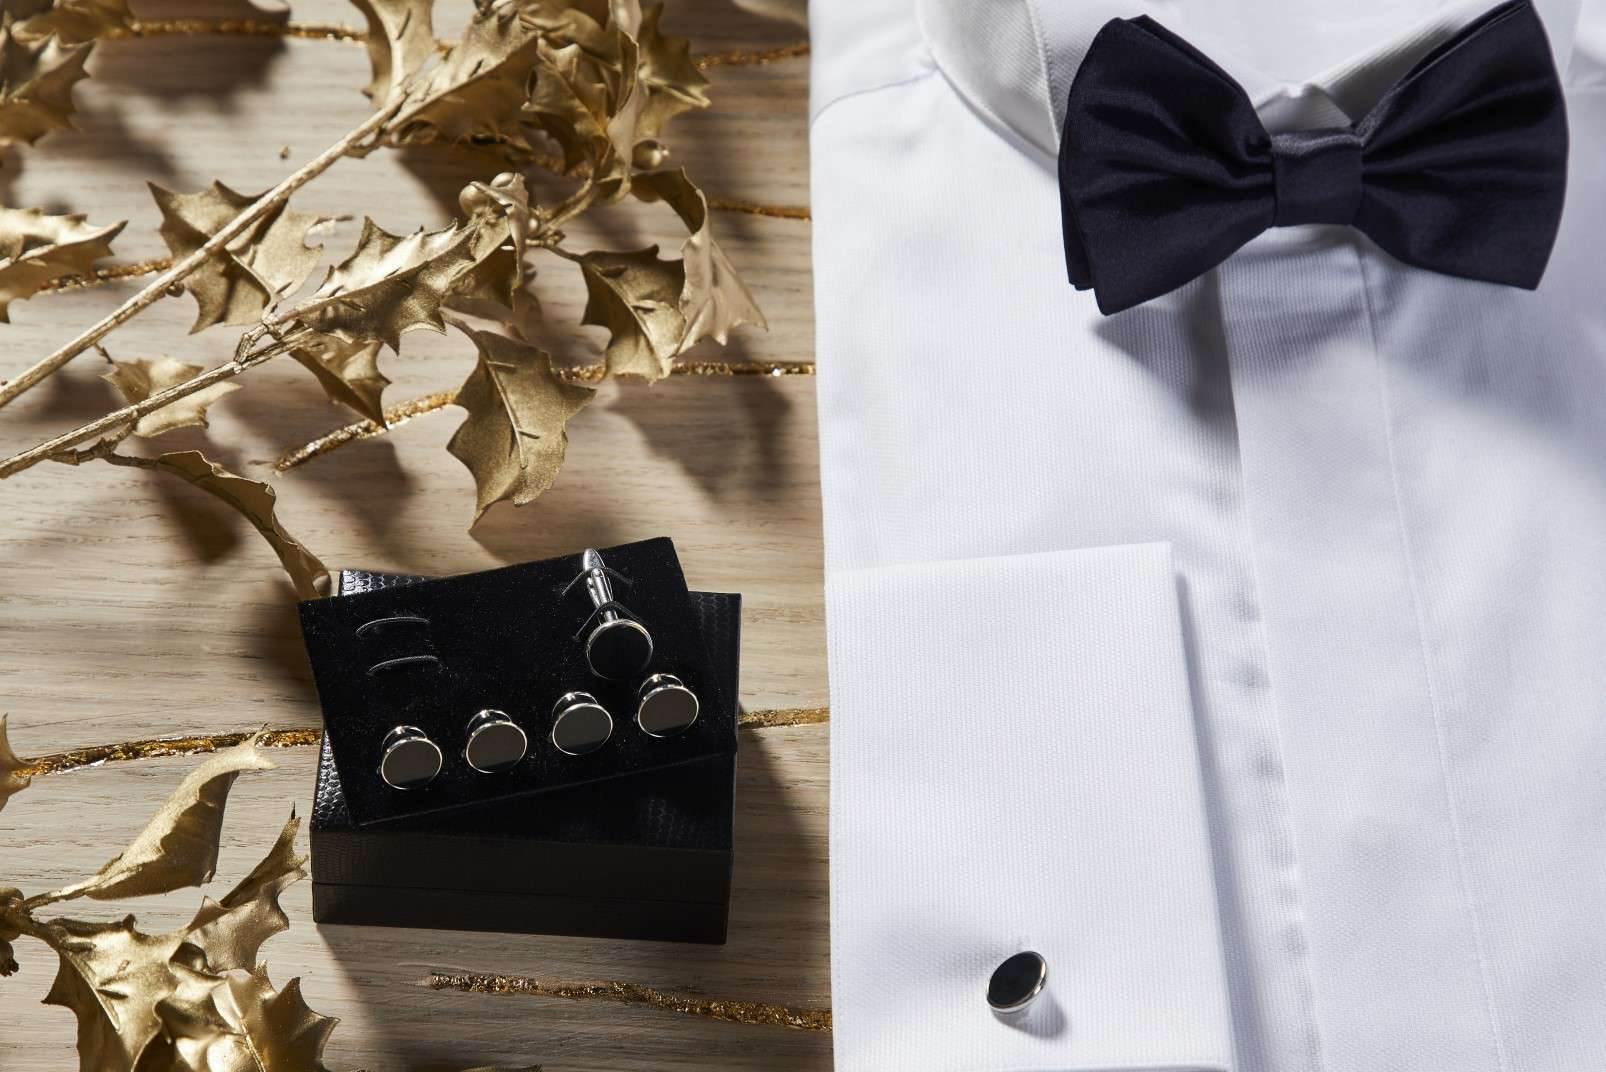 Boggi Milano gifts for a Gentleman - tuxedo shirt, black silk pre-tied bow tie, studs and cufflinks